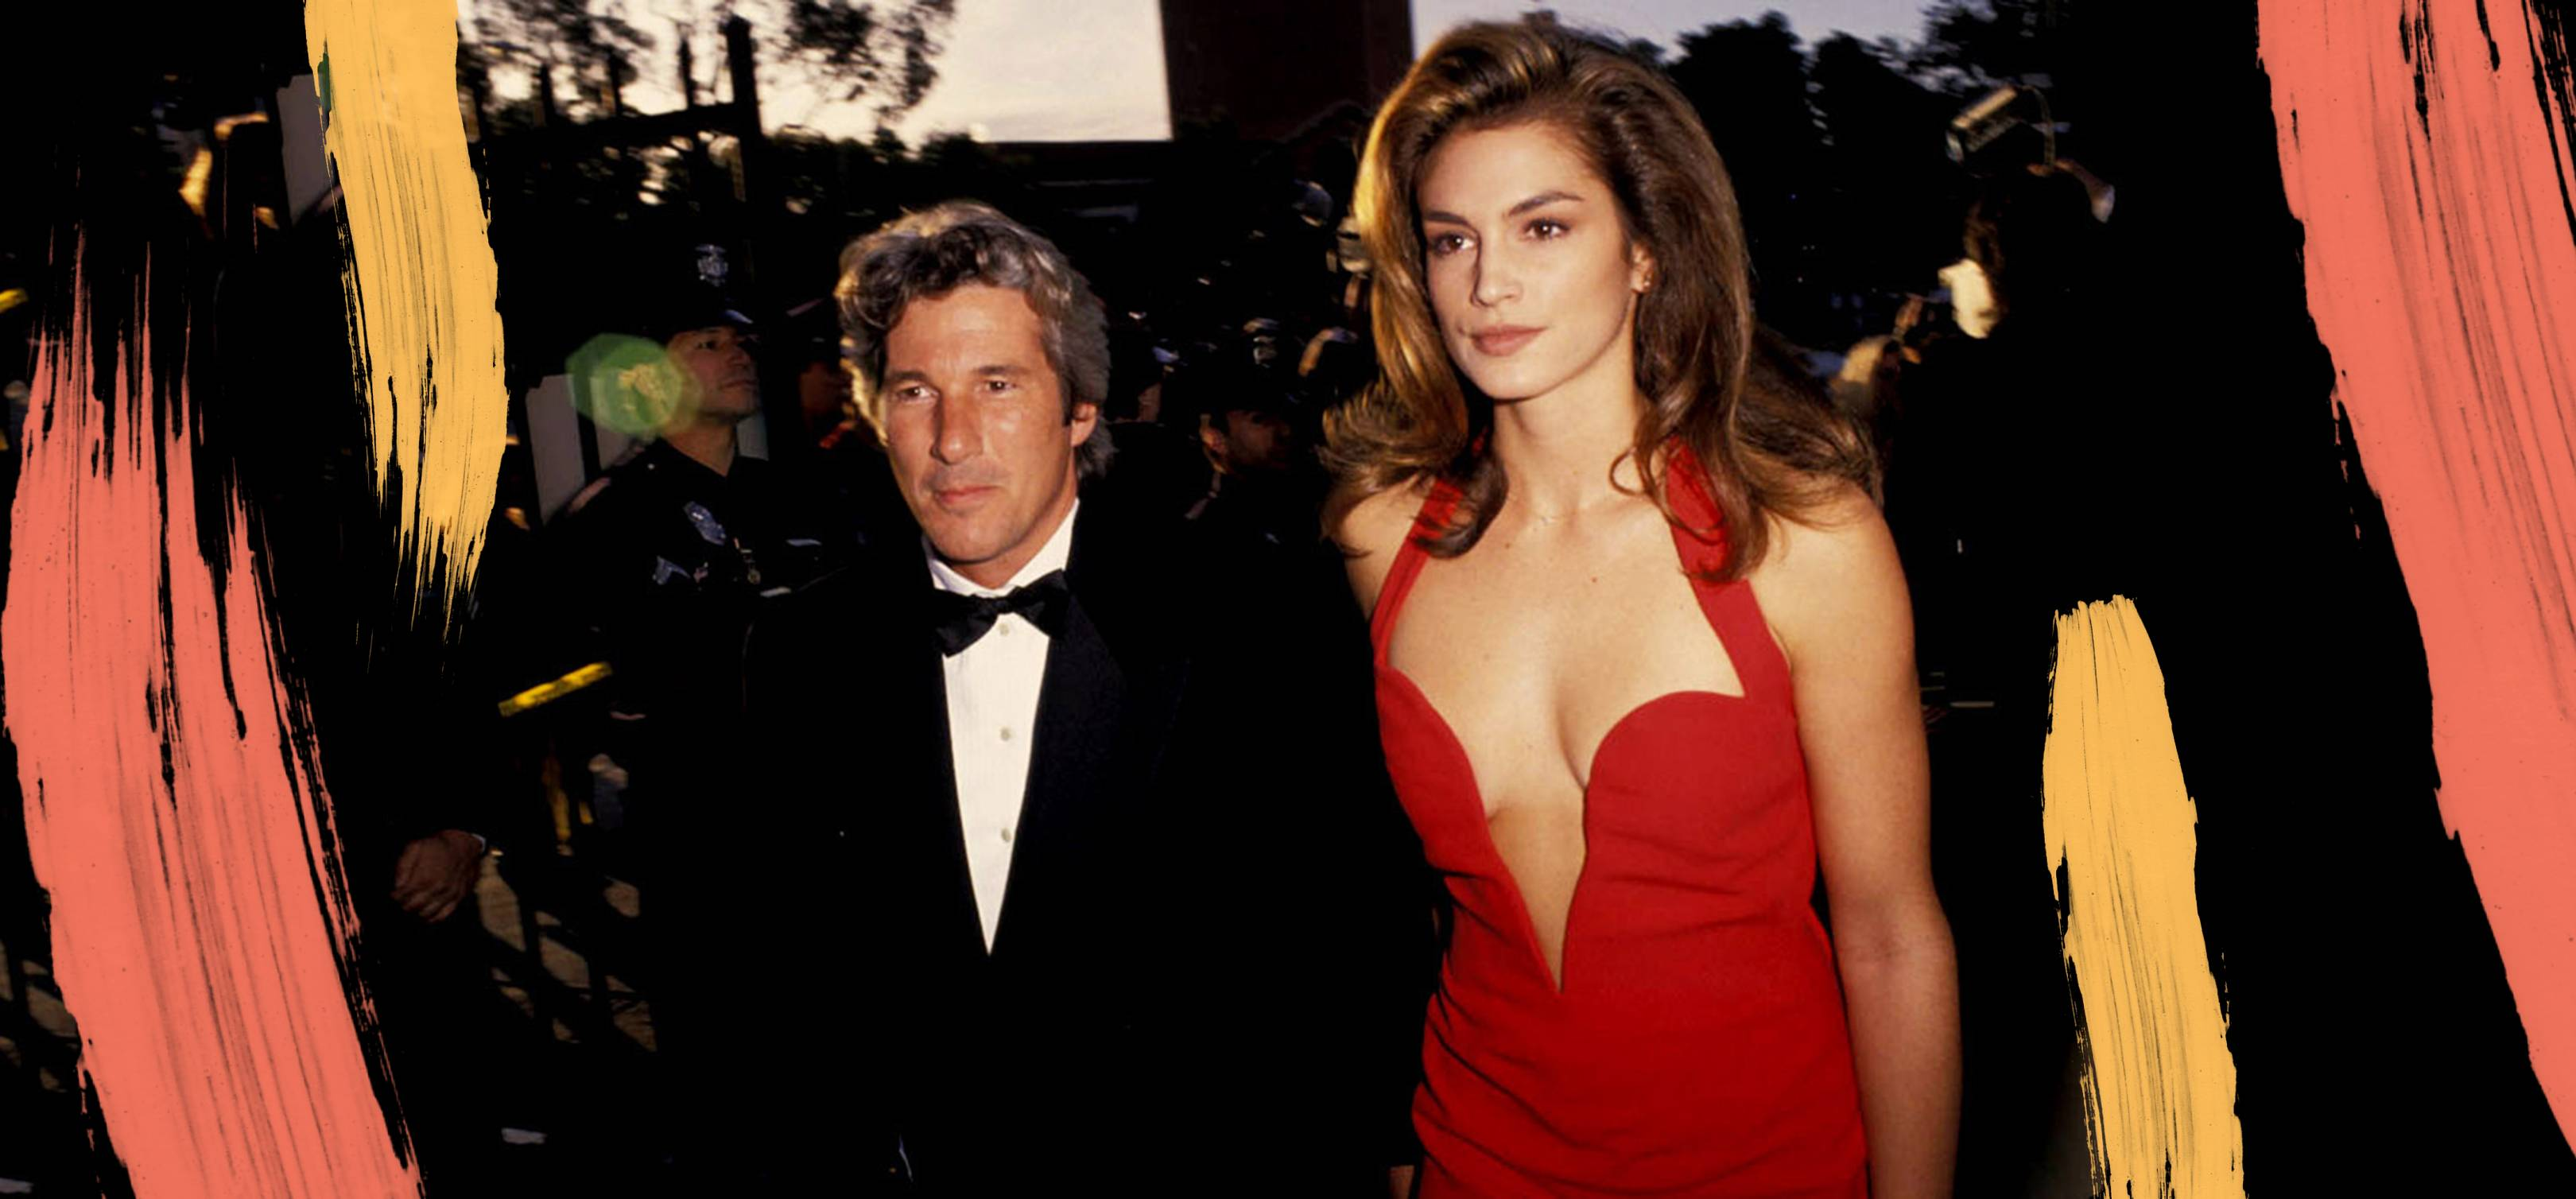 The most iconic throwback couples to hit the Oscars red carpet